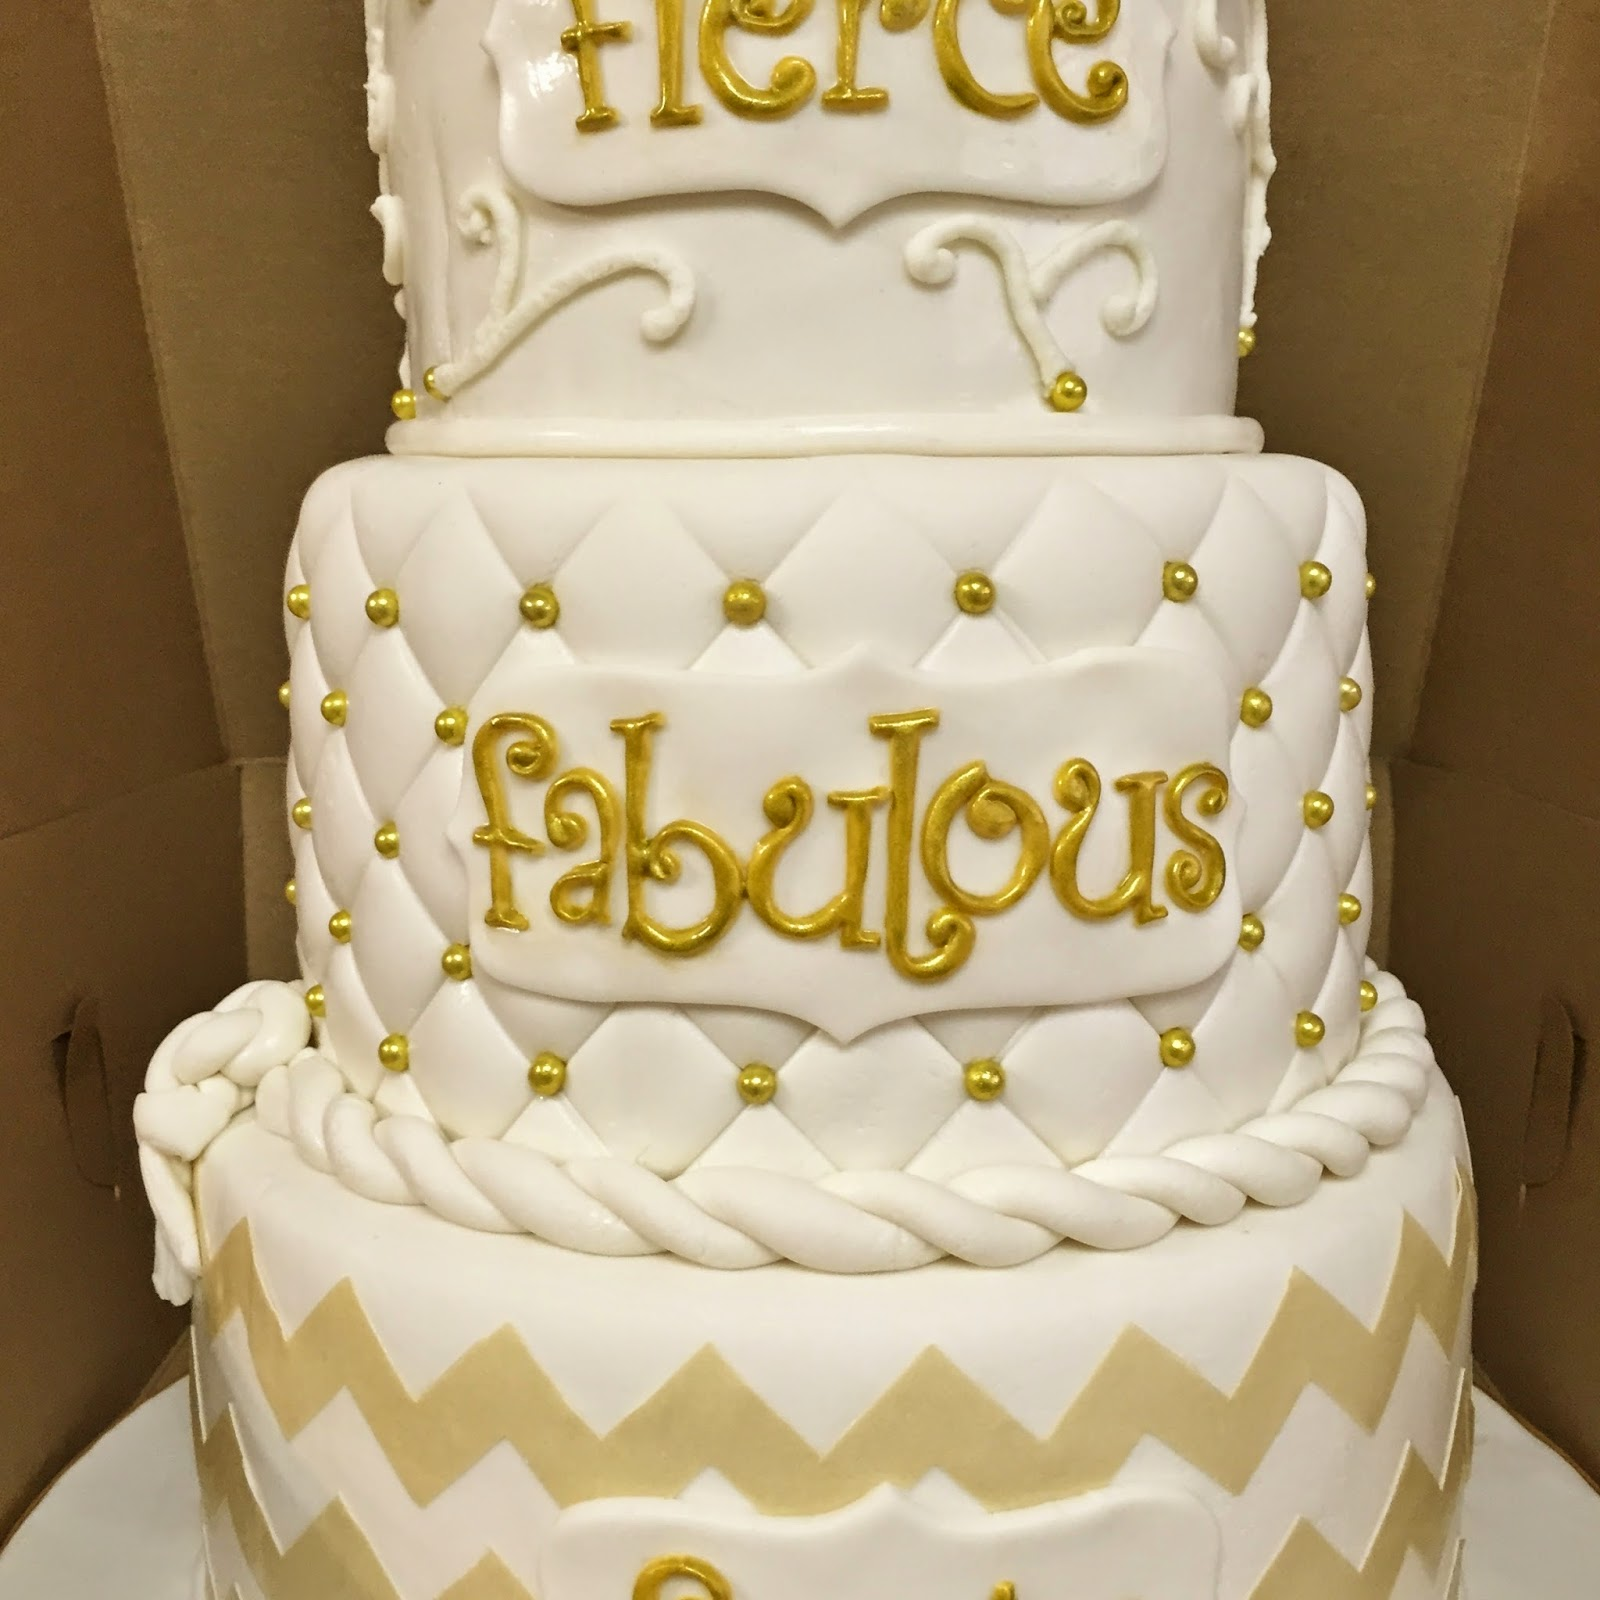 Photos Of White Birthday Cake : Cakes by Mindy: Gold and White 40th Birthday Cake 6